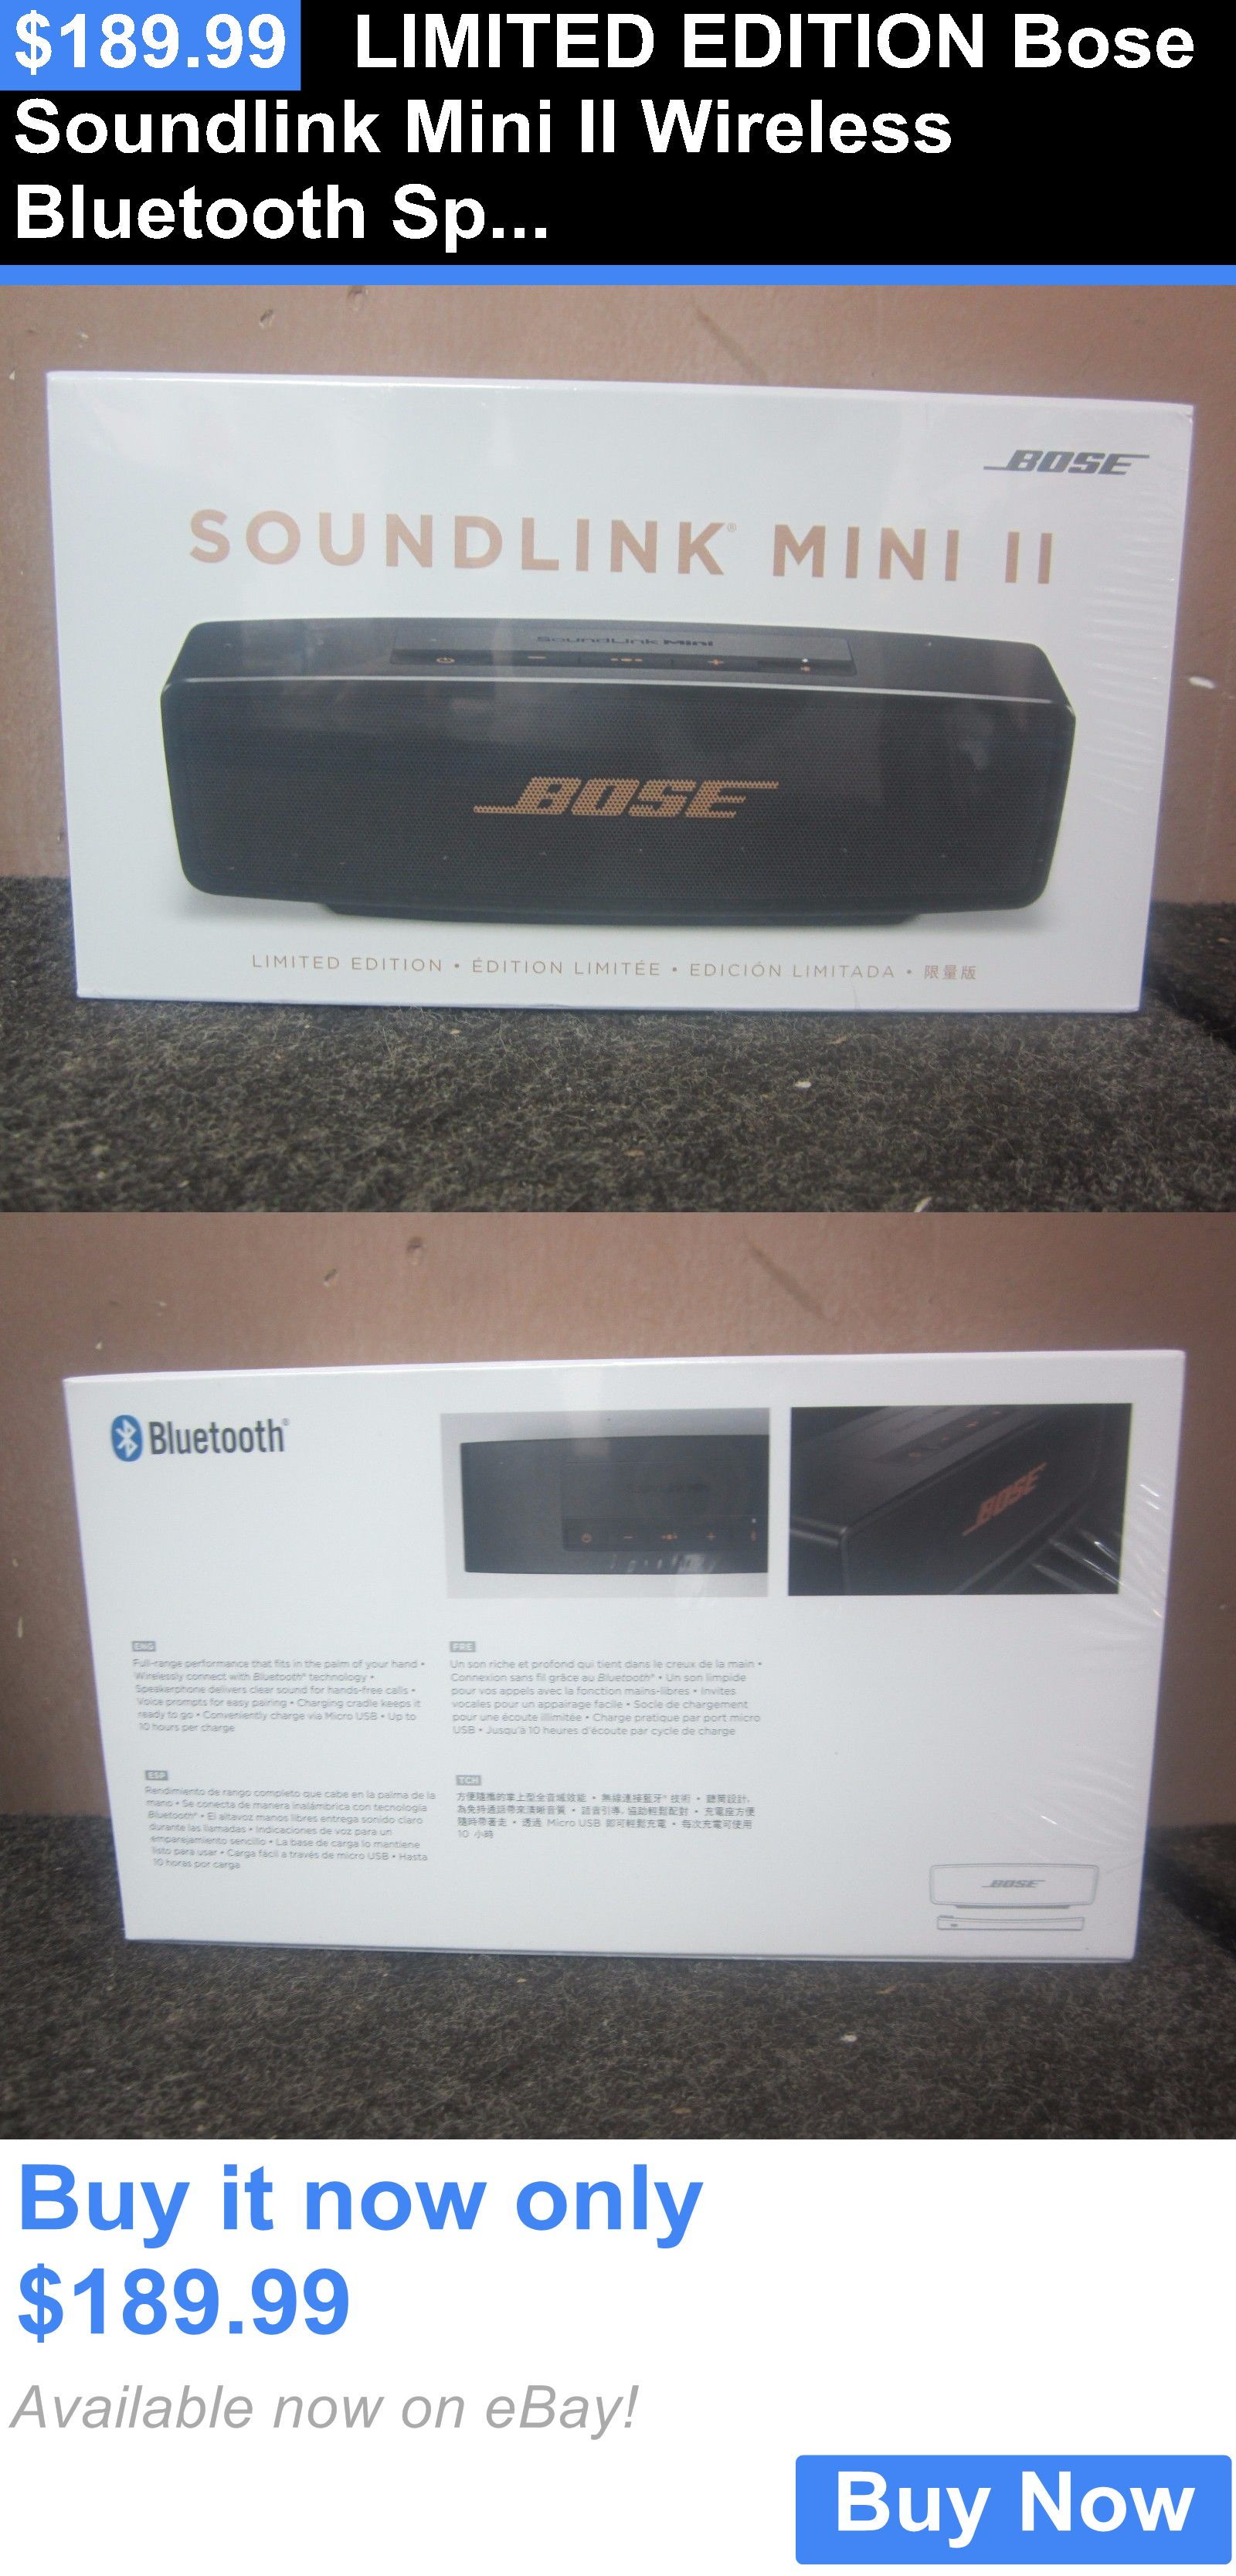 bose soundlink mini ii limited edition bluetooth speaker